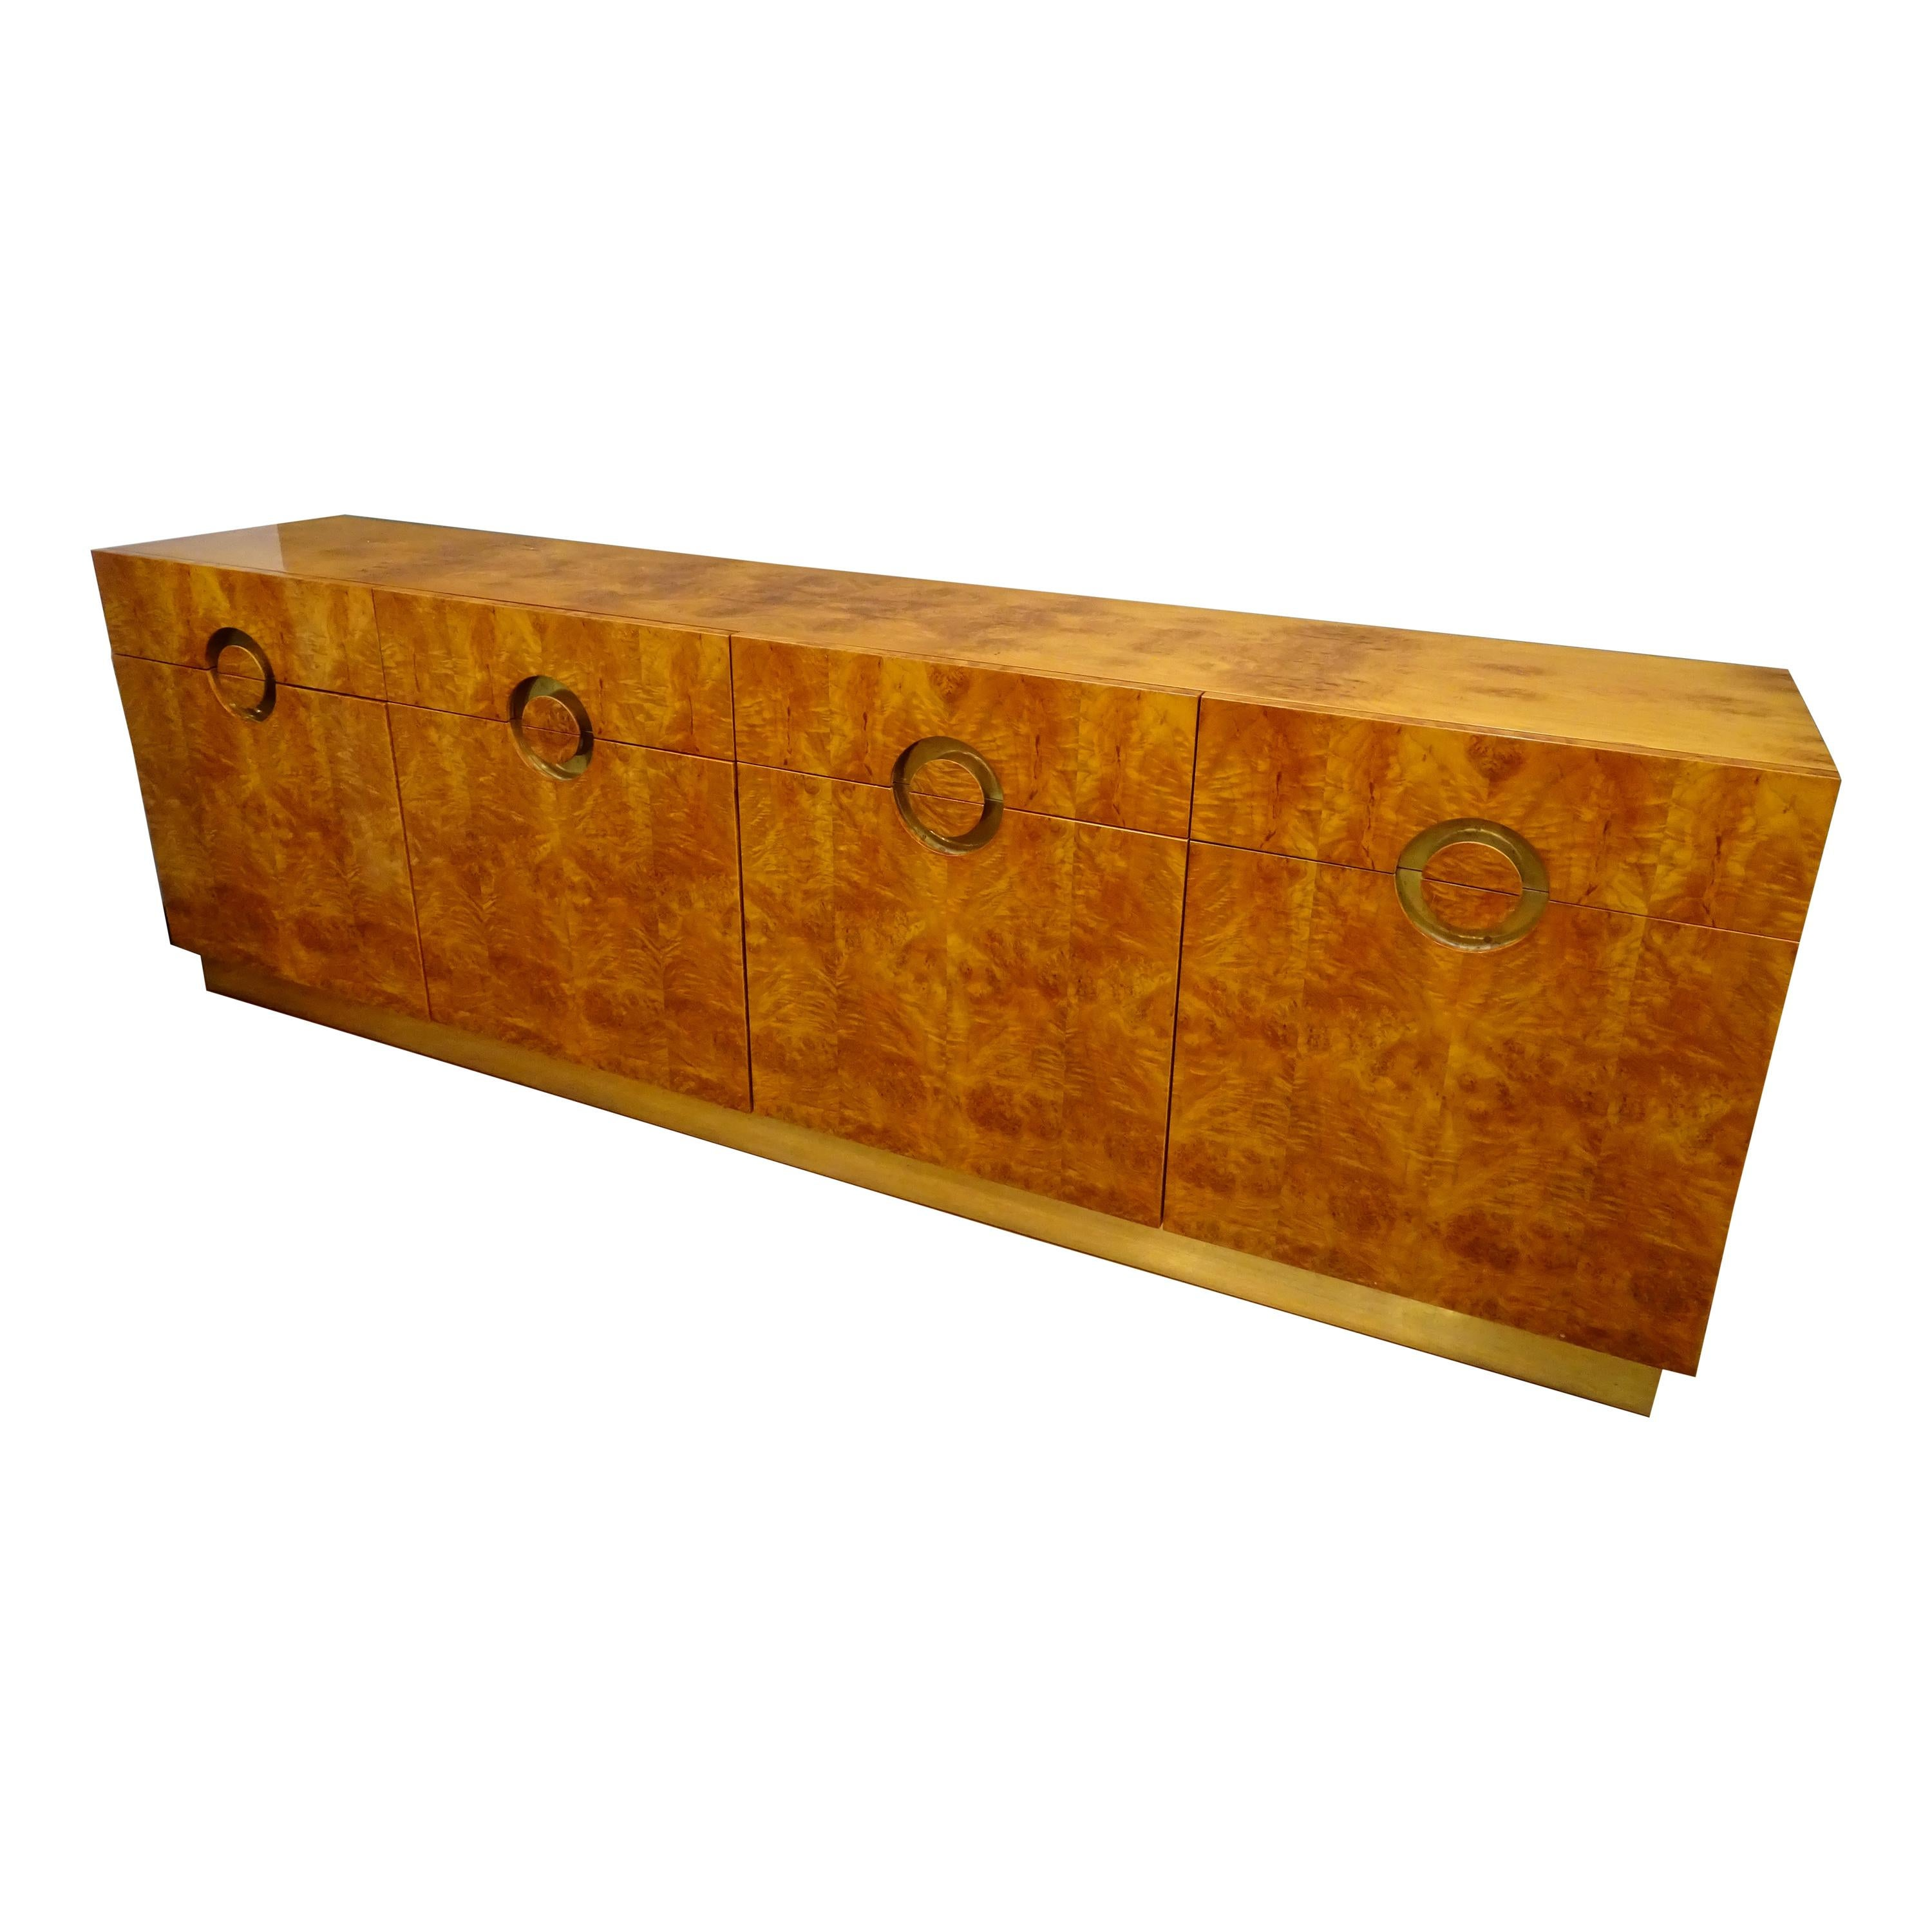 Willy Rizzo Burlwood and Brass Sideboard, 70s, Golden  Brass